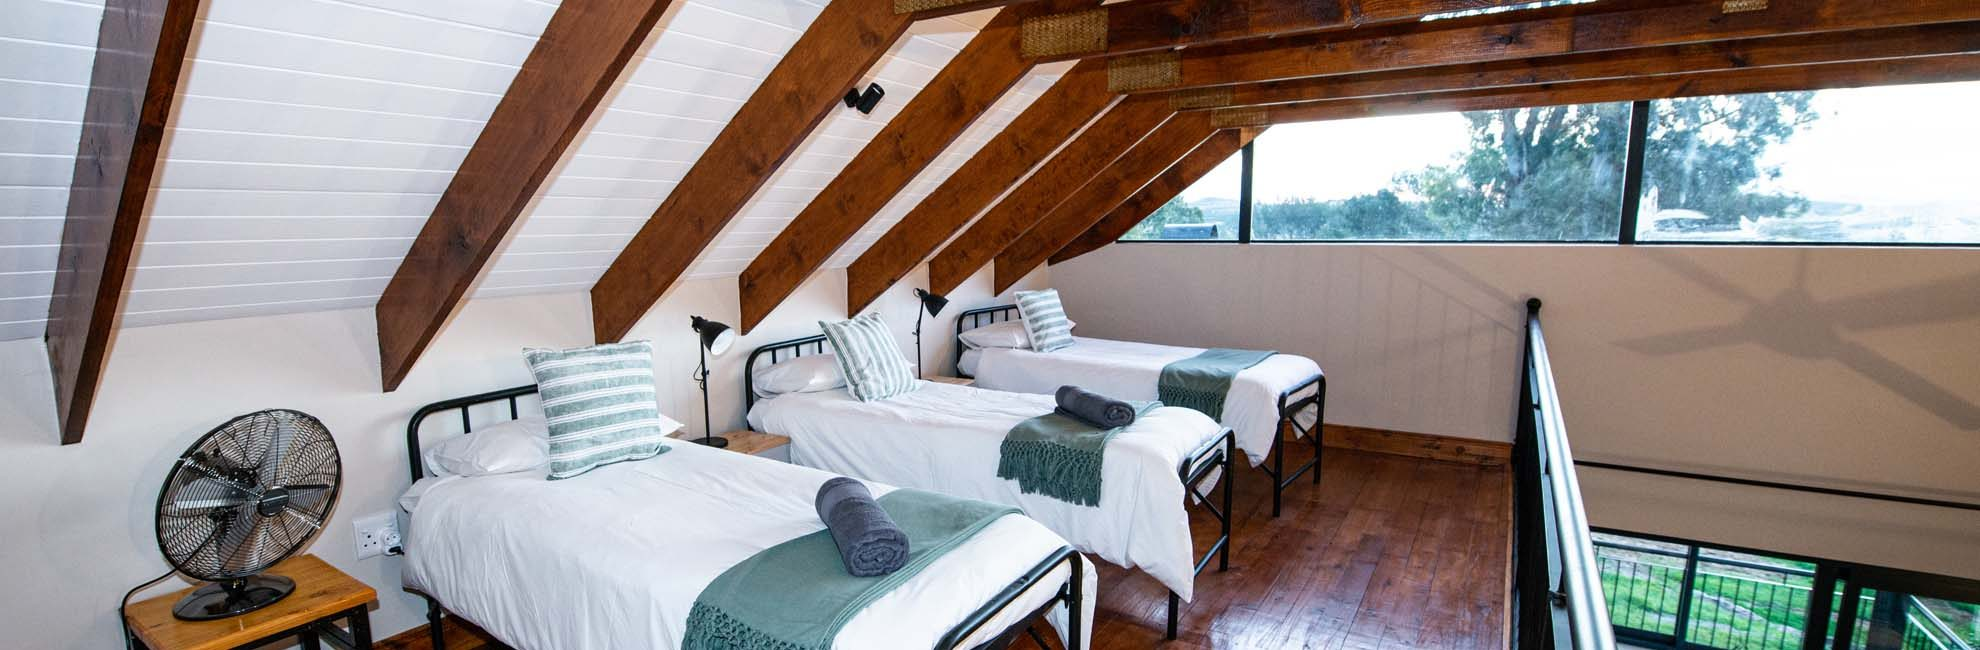 Loft level second bedrooms make the cottages ideal for families